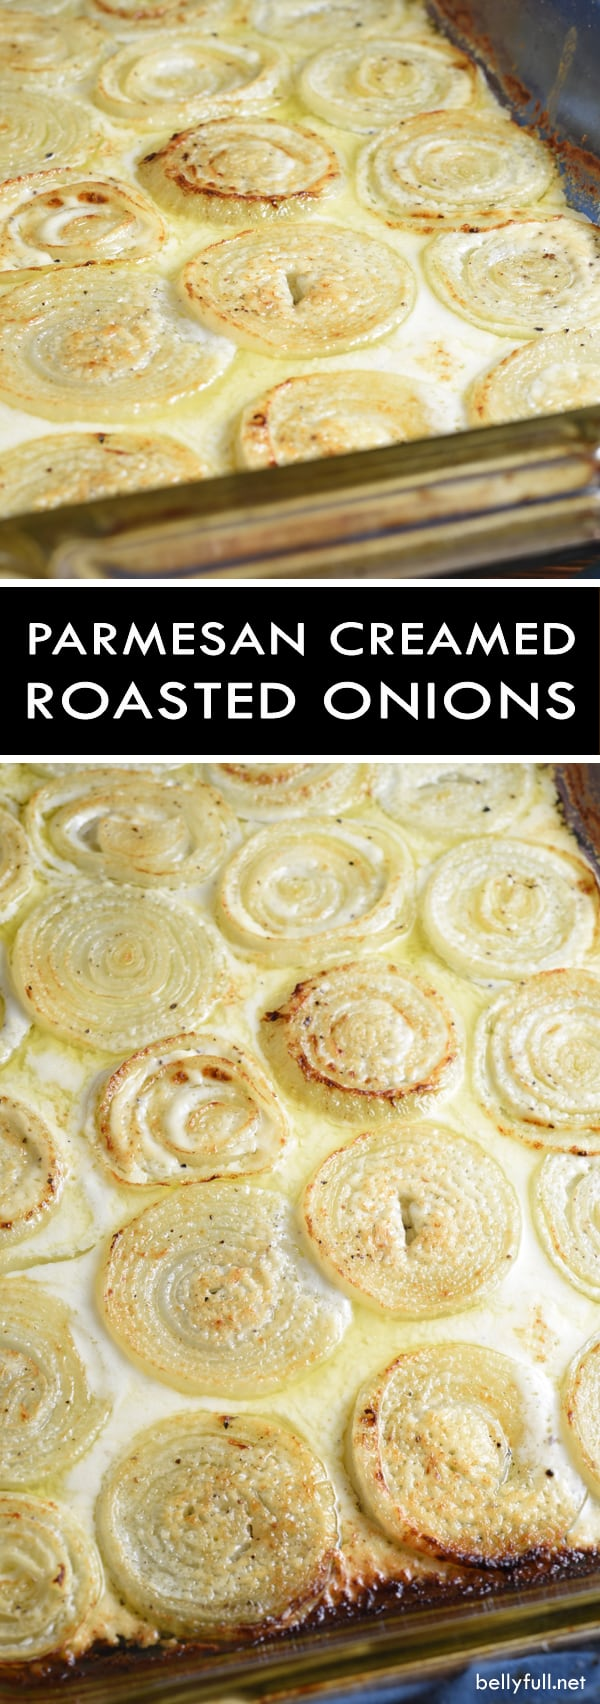 Roasted Parmesan Creamed Onions